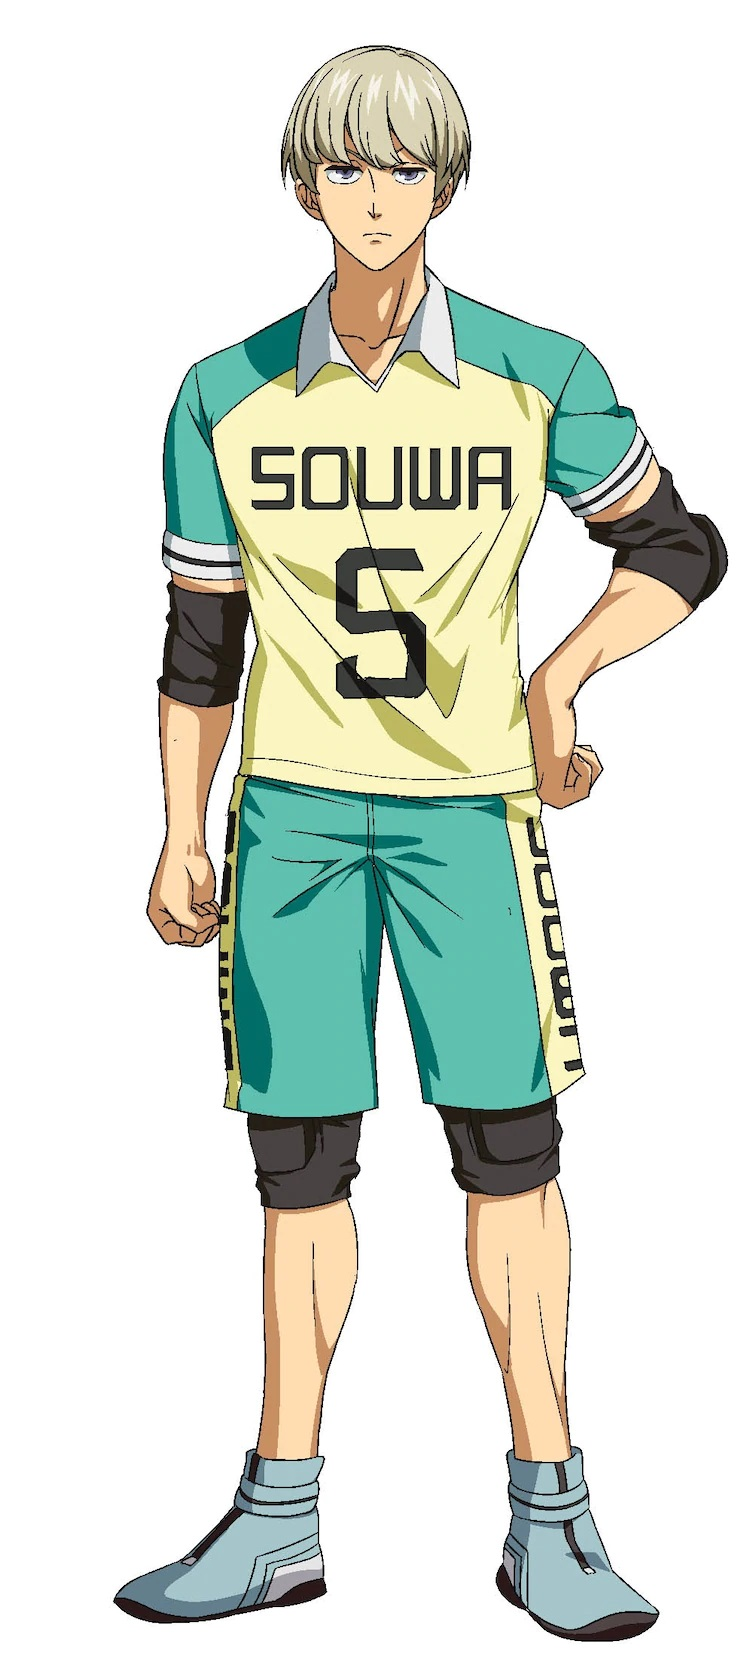 A character setting of Yuu Eikura, a member of the Souwa High School kabaddi club sporting fair colored hair and an indifferent expression from the upcoming Burning Kabaddi TV anime.